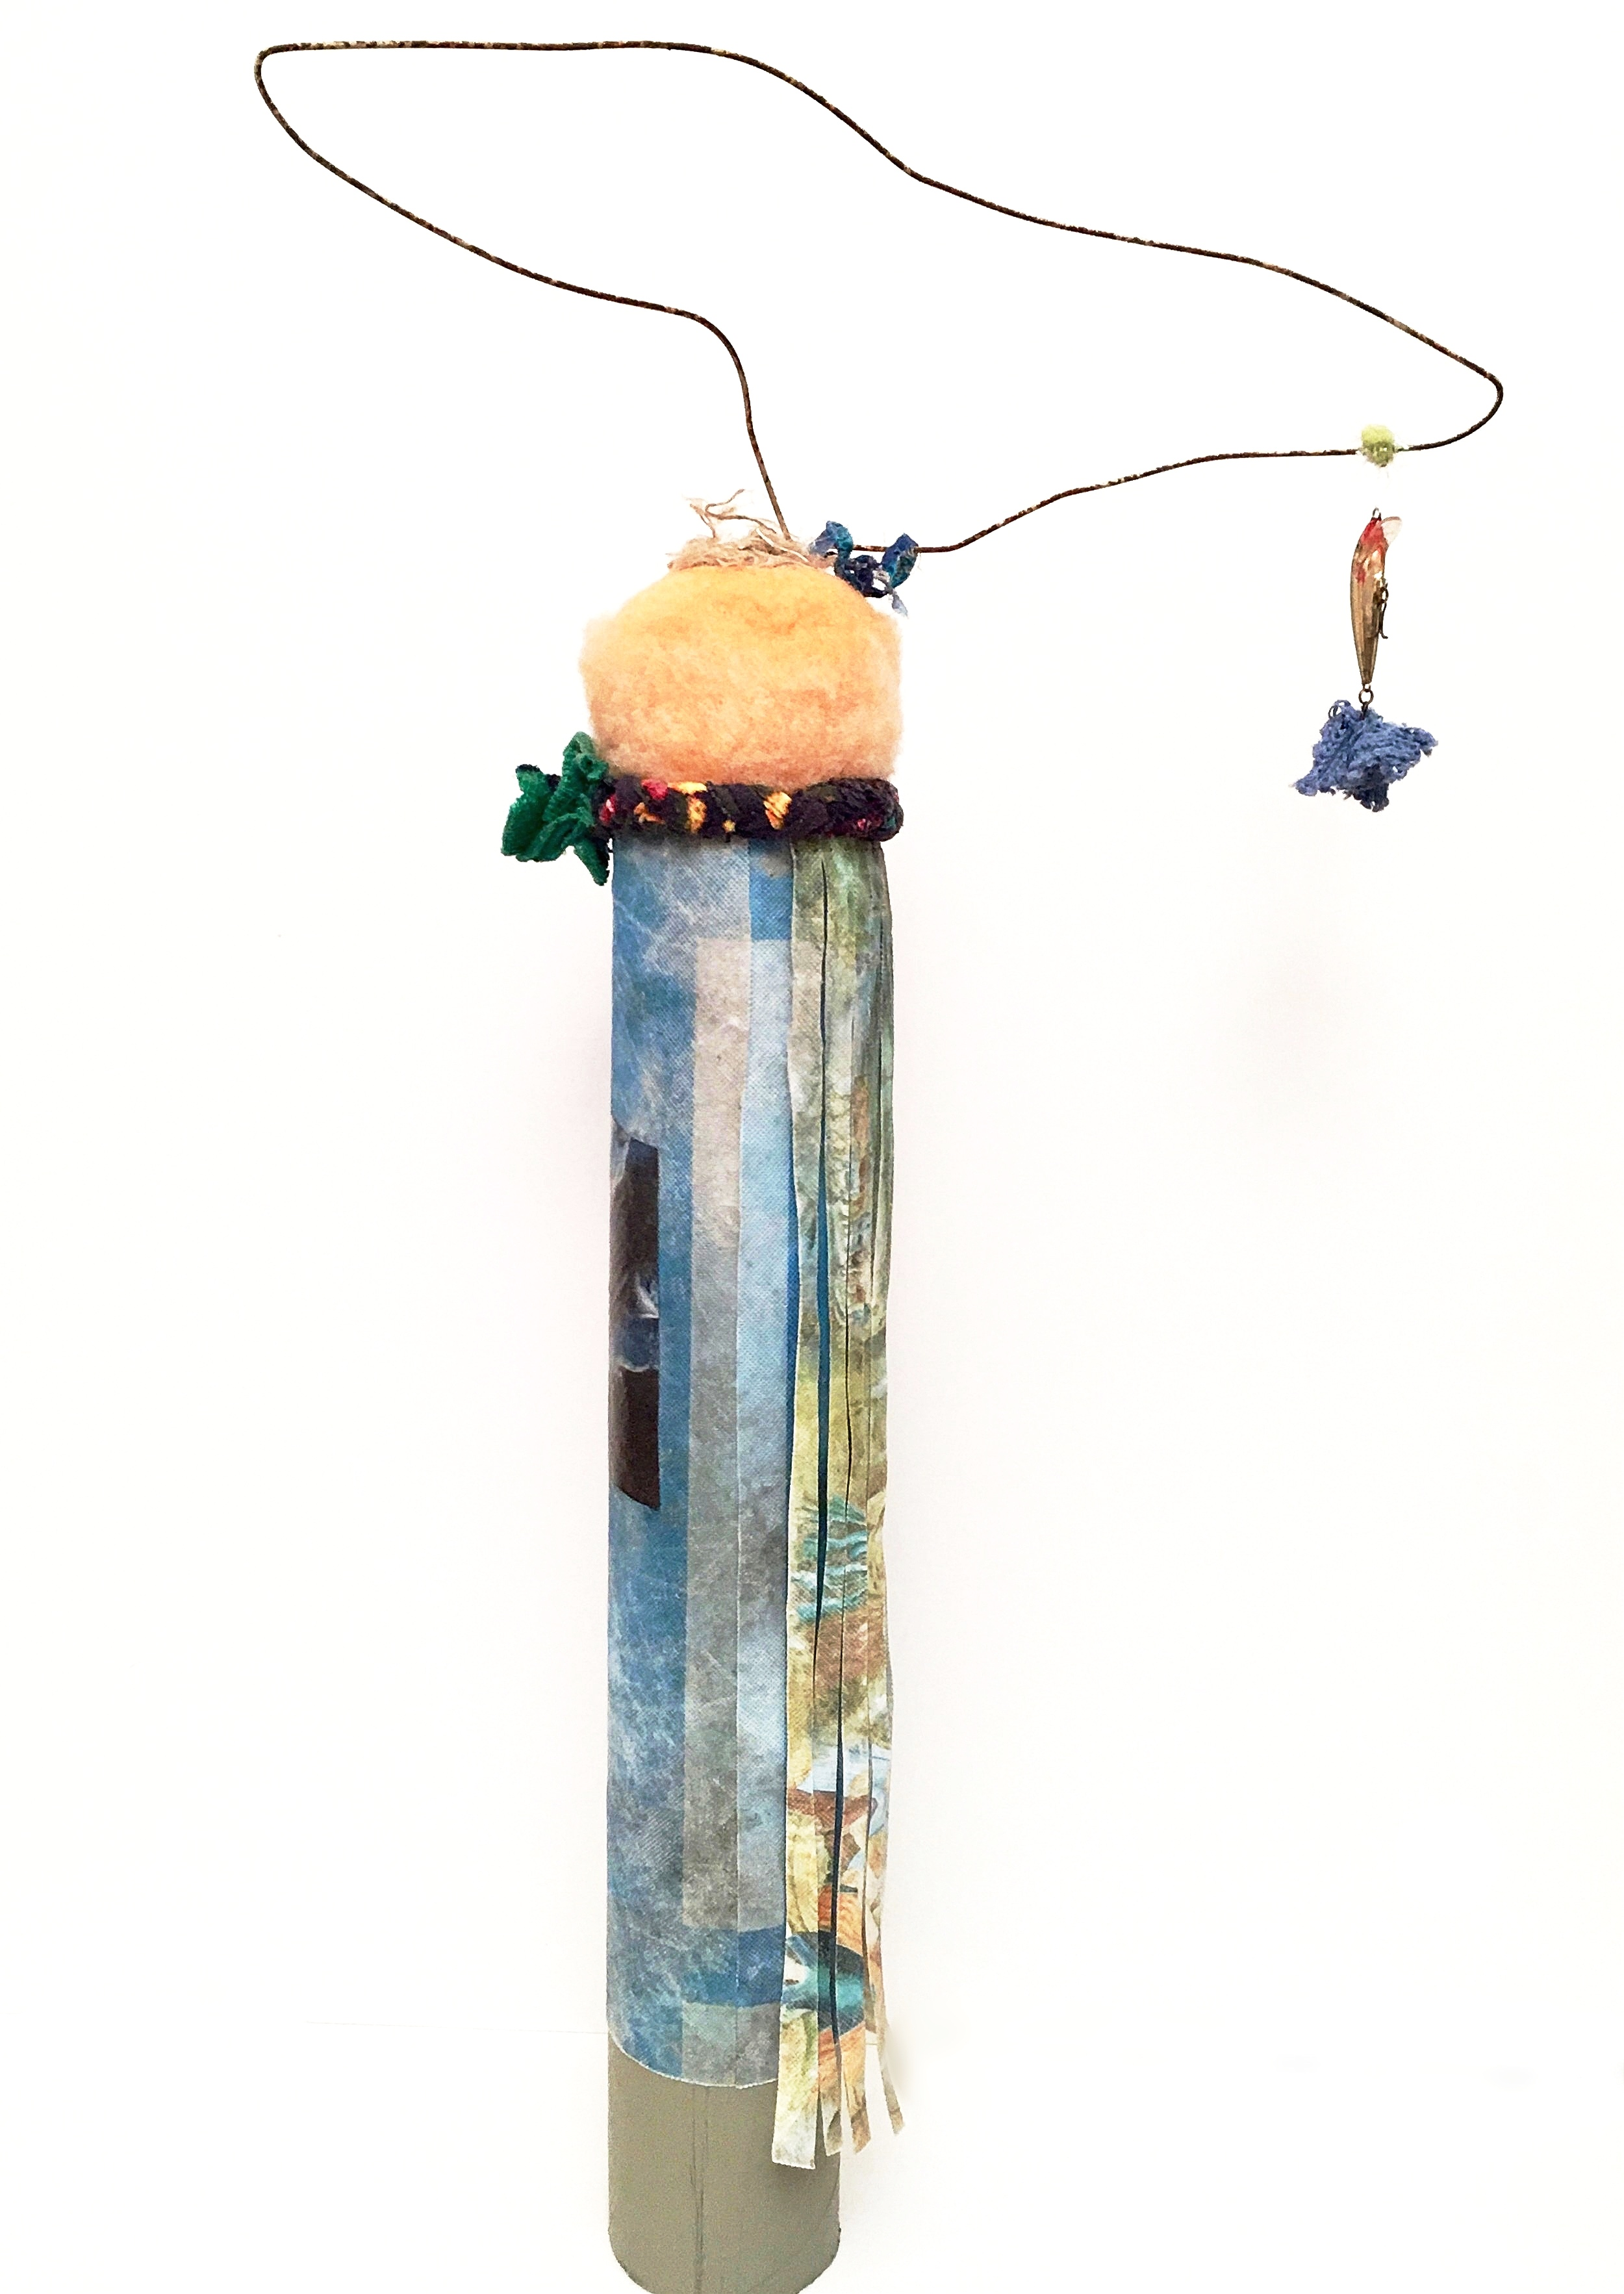 """Bluey with Lure   Basmati rice sack, woven textiles, sponge, fibers, rusty hanger, fishing lure, collaged paper, threads, paint, and acrylic gel on industrial cardboard tube  29 x 15½"""" round  2017"""